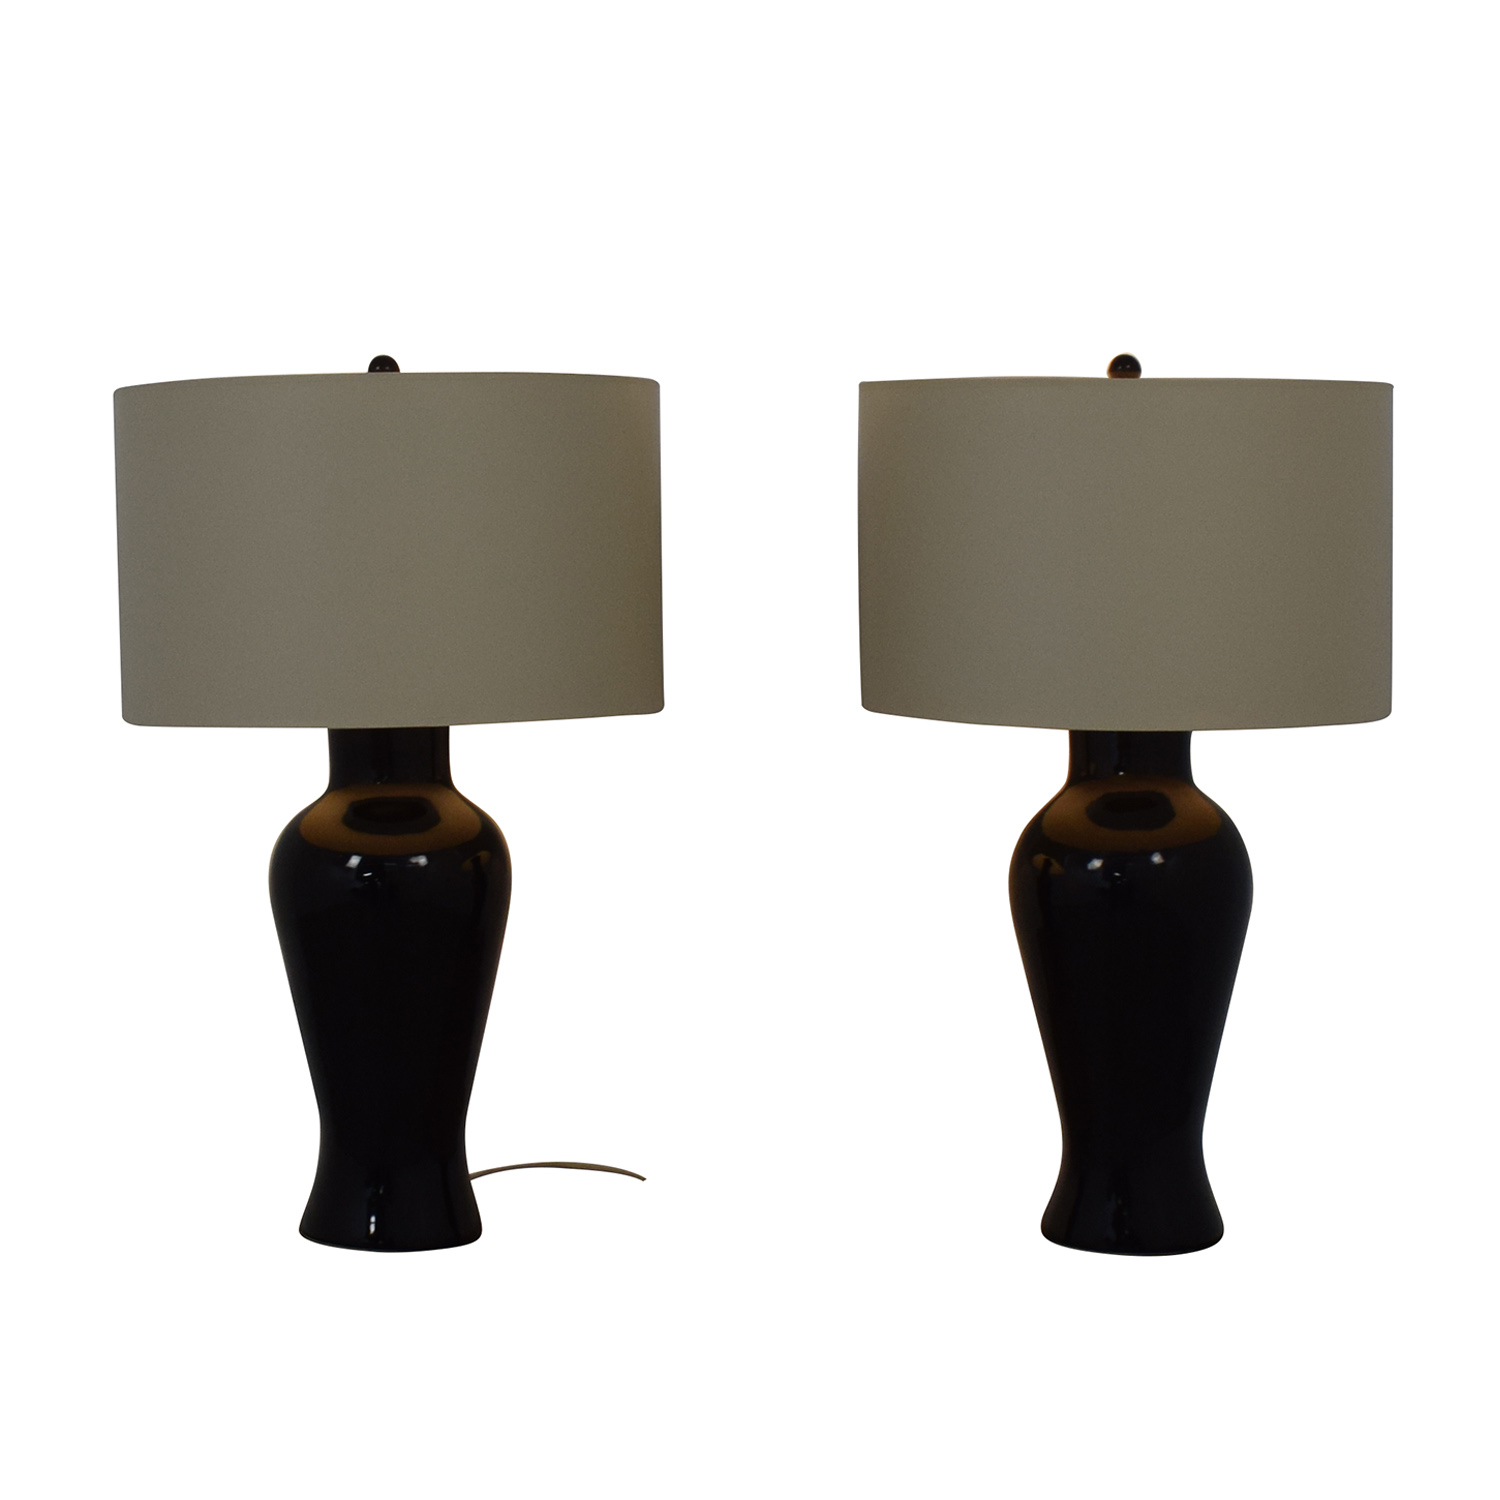 Barbara Cosgrove Barbara Cosgrove Black Ceramic Table Lamps coupon